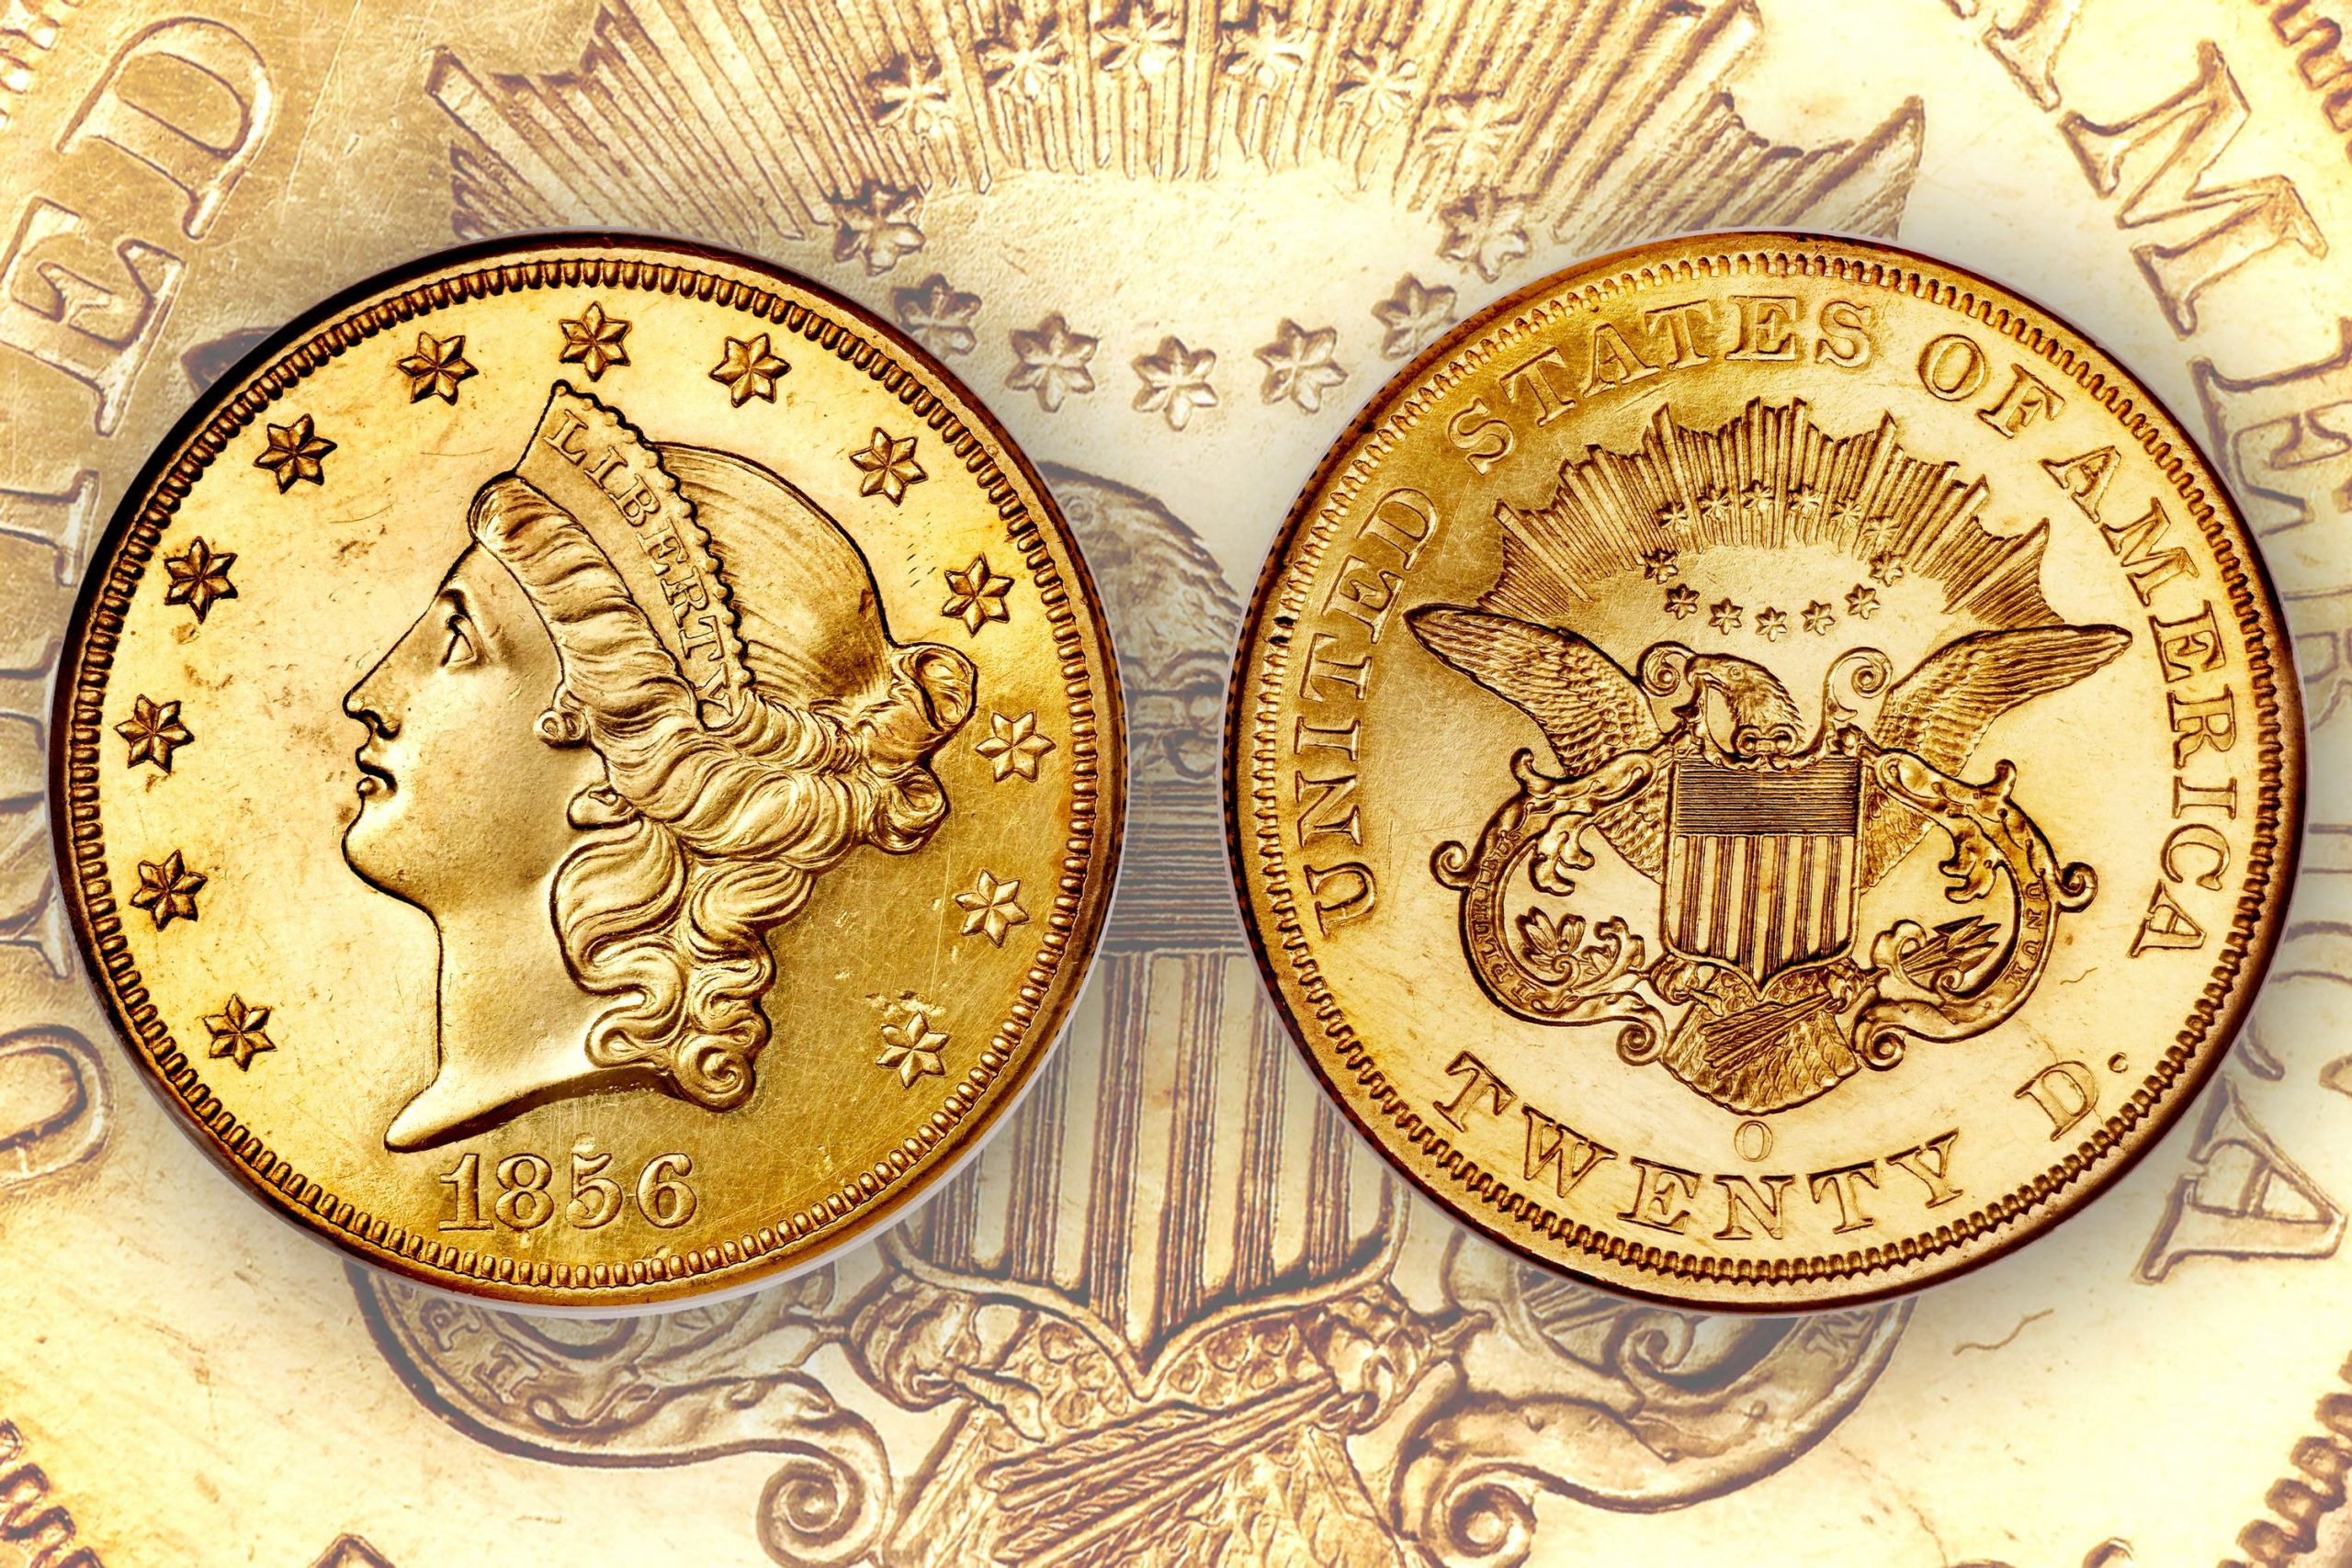 Purchase Liberty Head Twenty Dollar Gold Coins Online